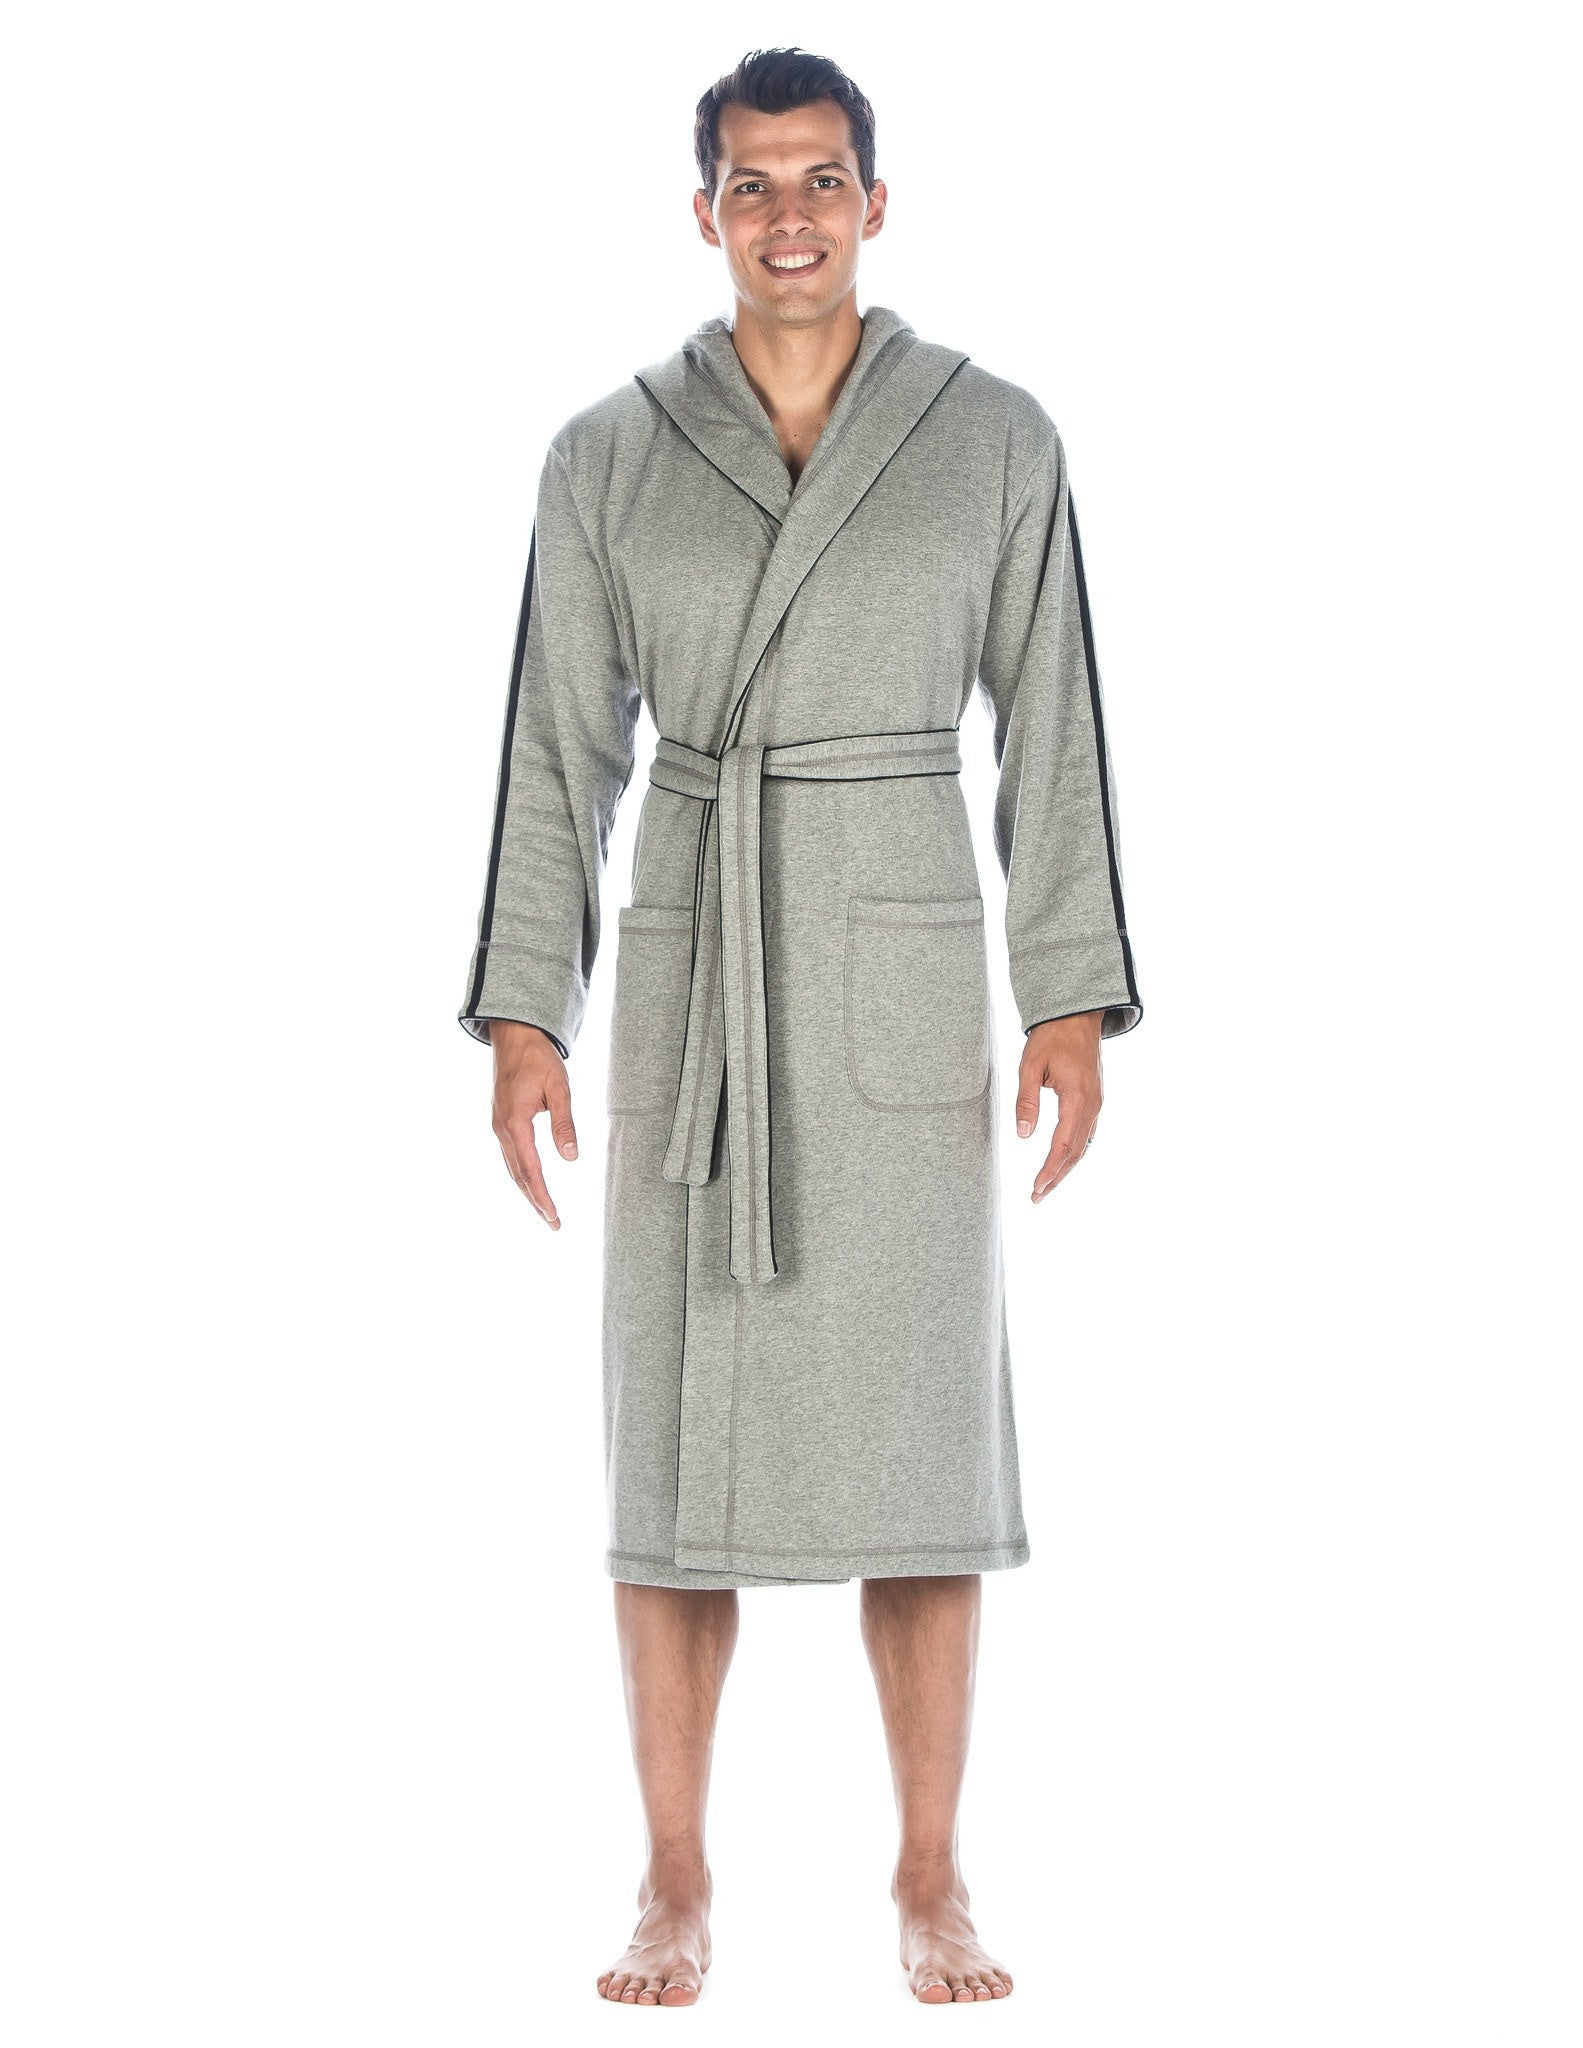 Noble Mount Men\'s Fleece Lined Hooded Robe - Introductory Price